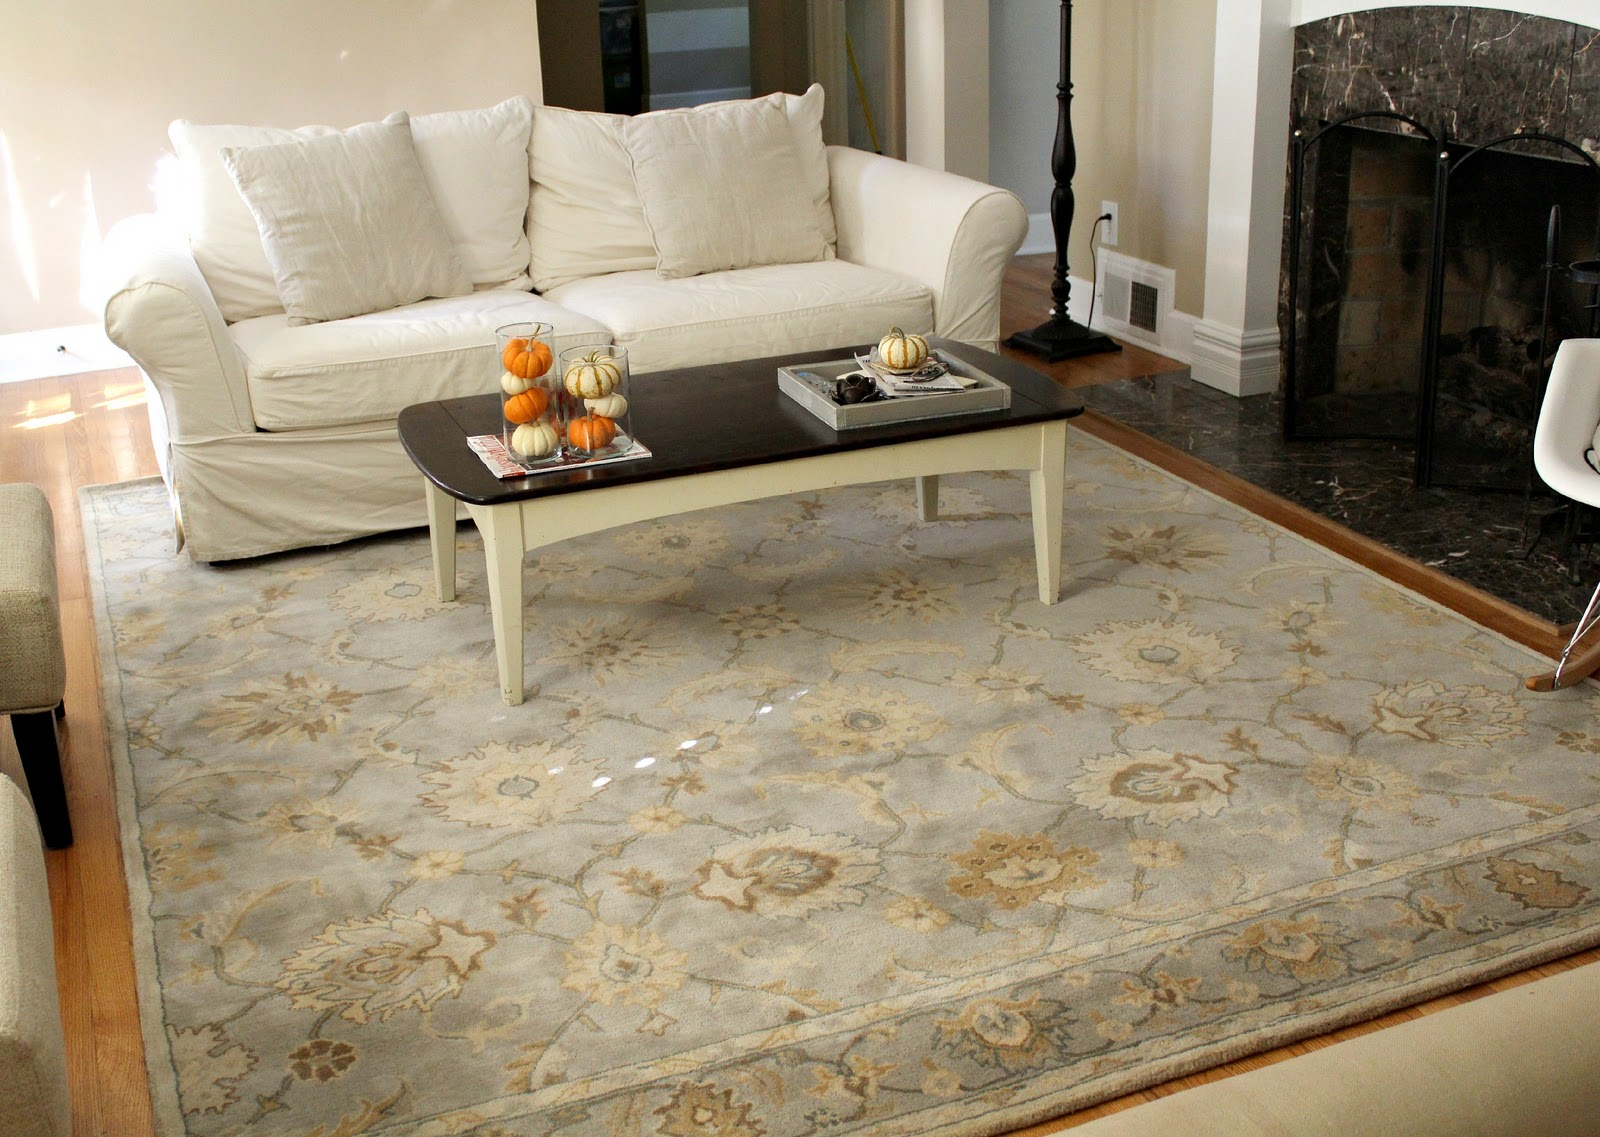 Choosing best rugs for living room | Interior design ideas